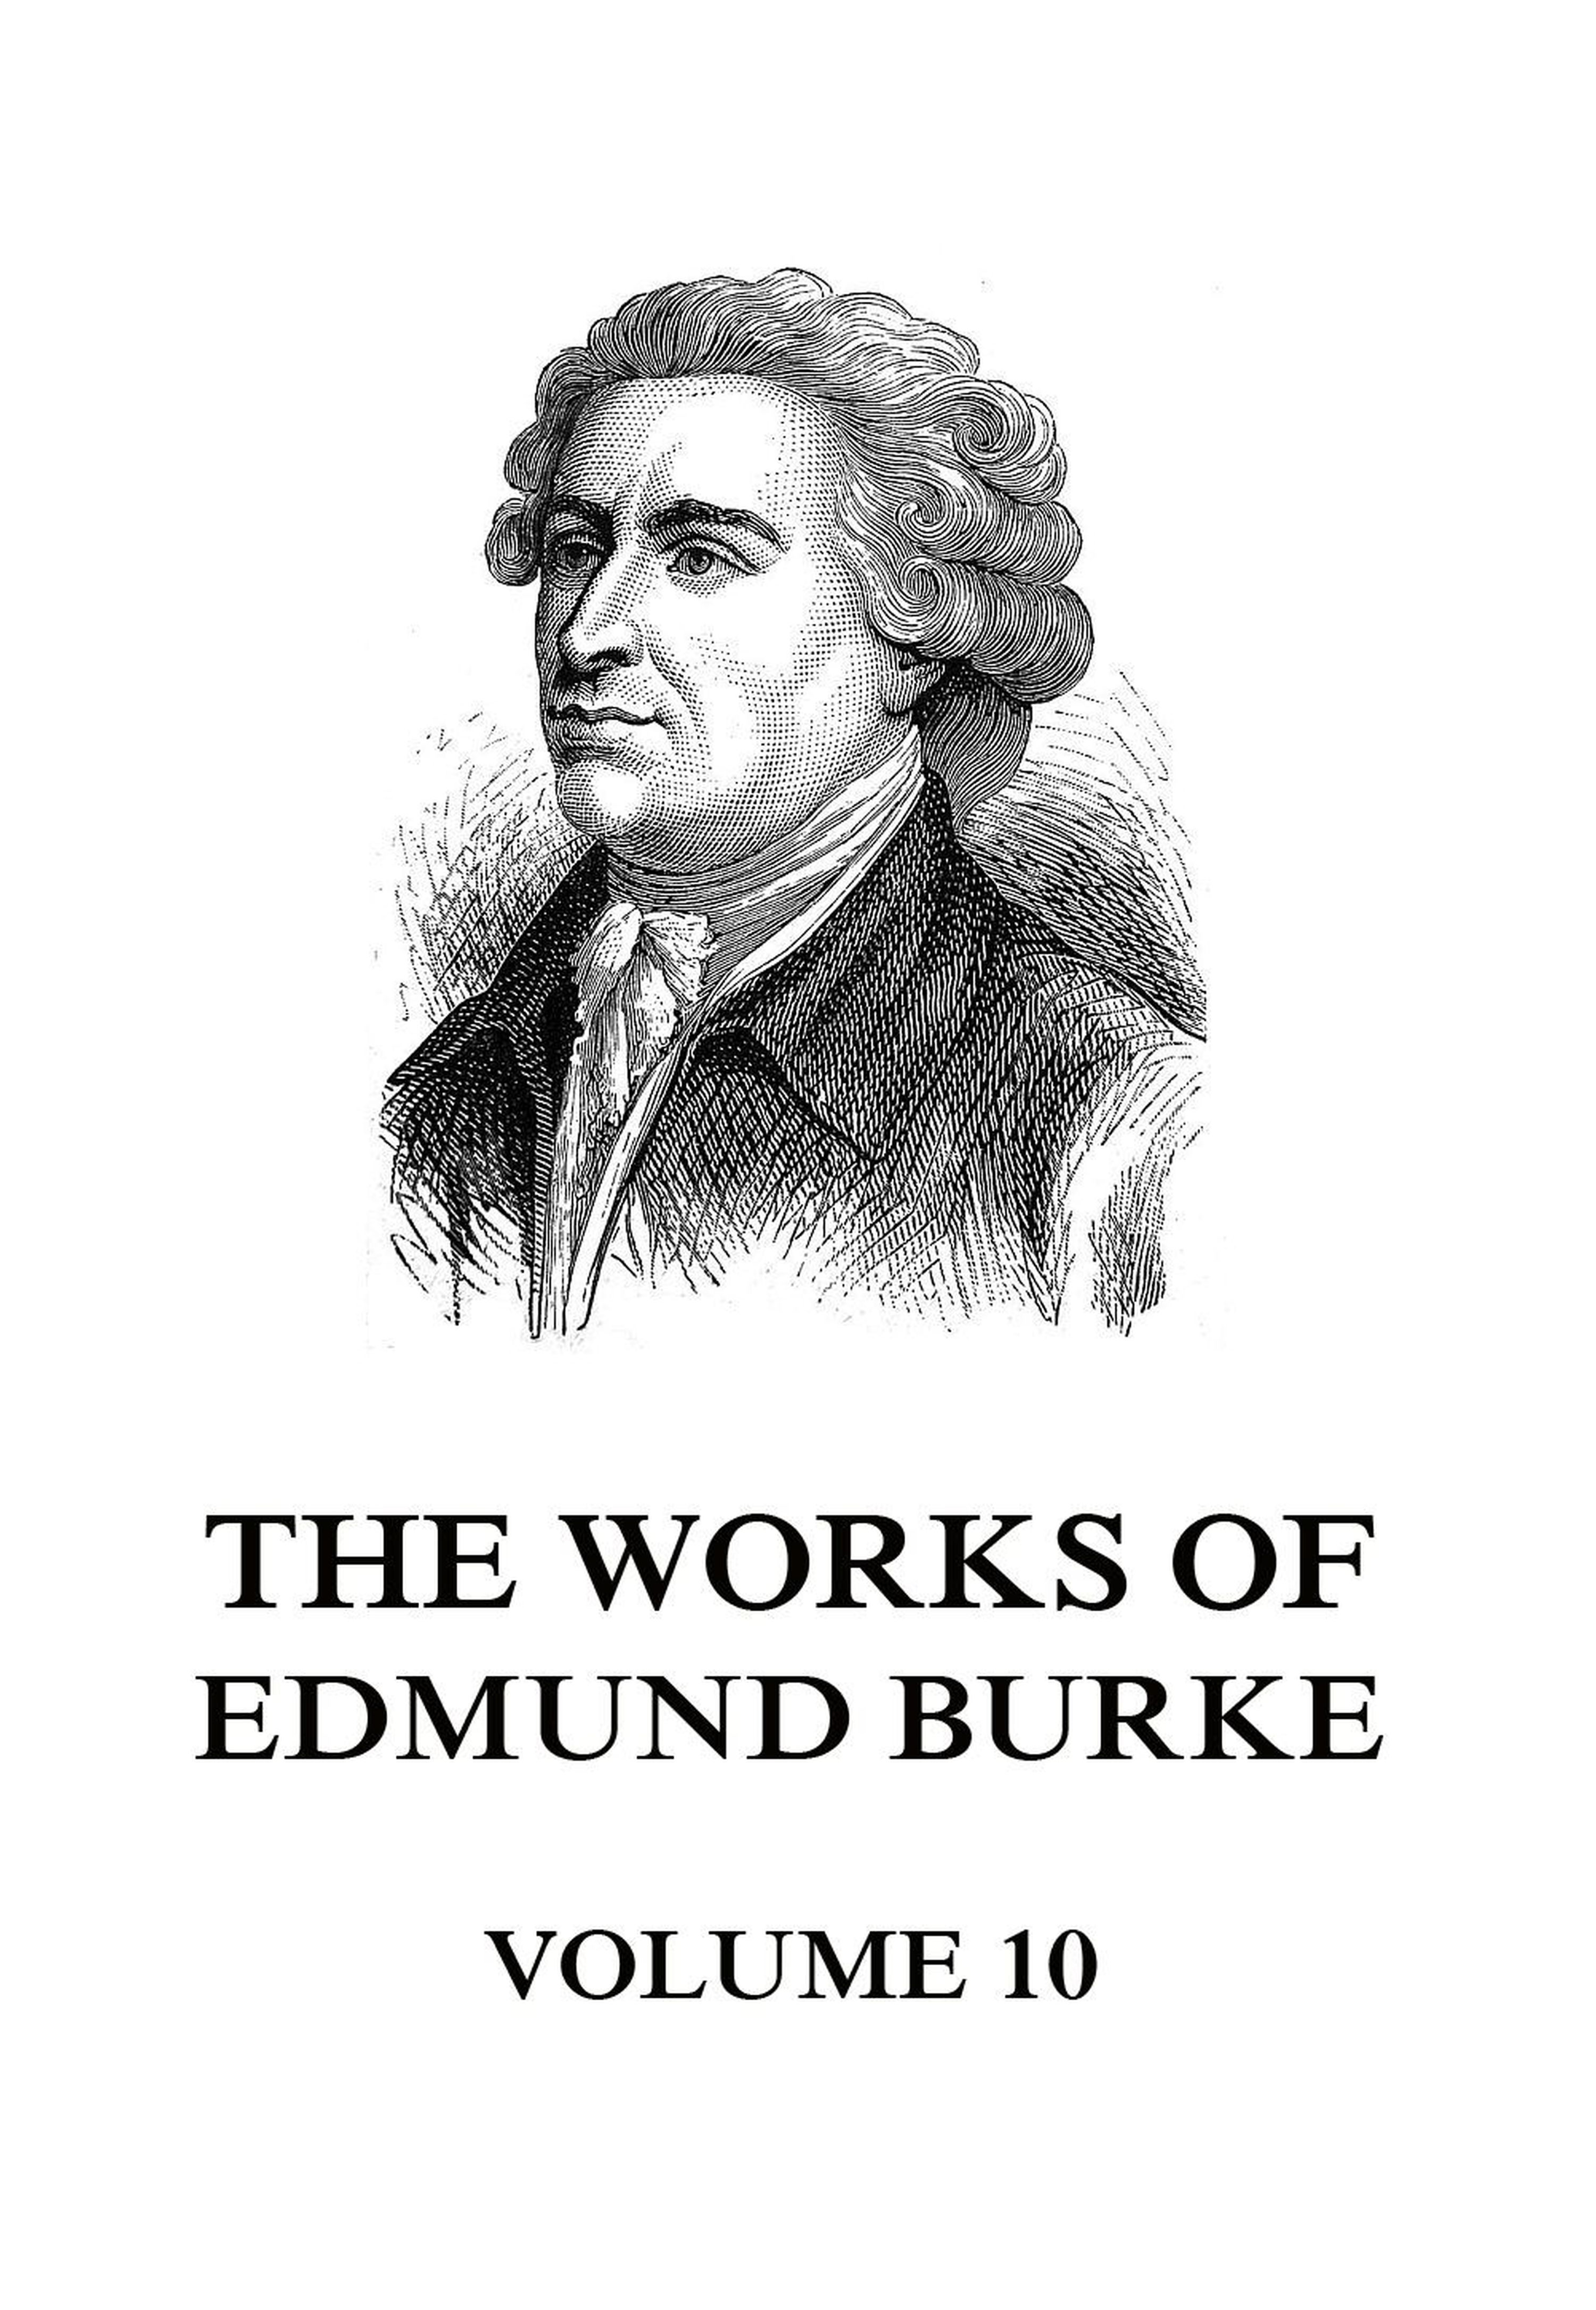 The Works of Edmund Burke Volume 10